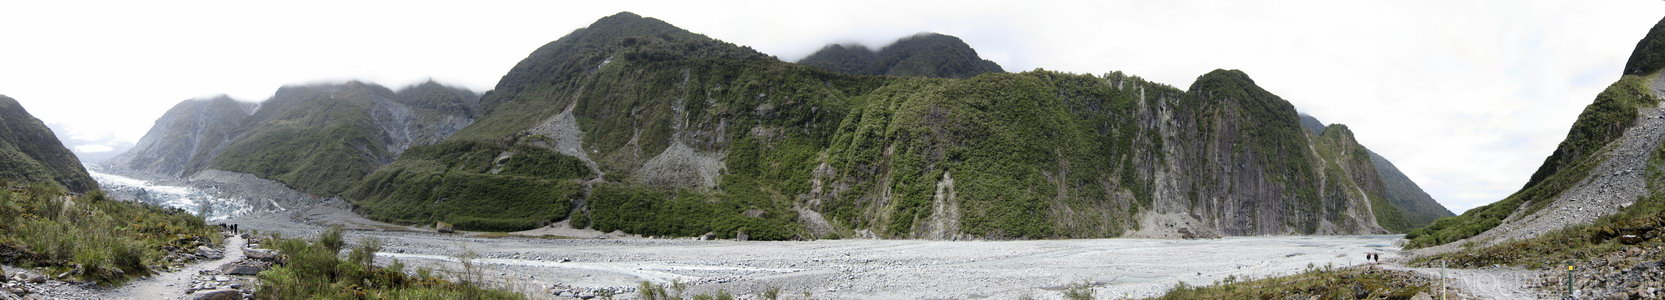 Fox Glacier Carve - The terminus of Fox Glacier at the end of the rock path it has left behind during receede